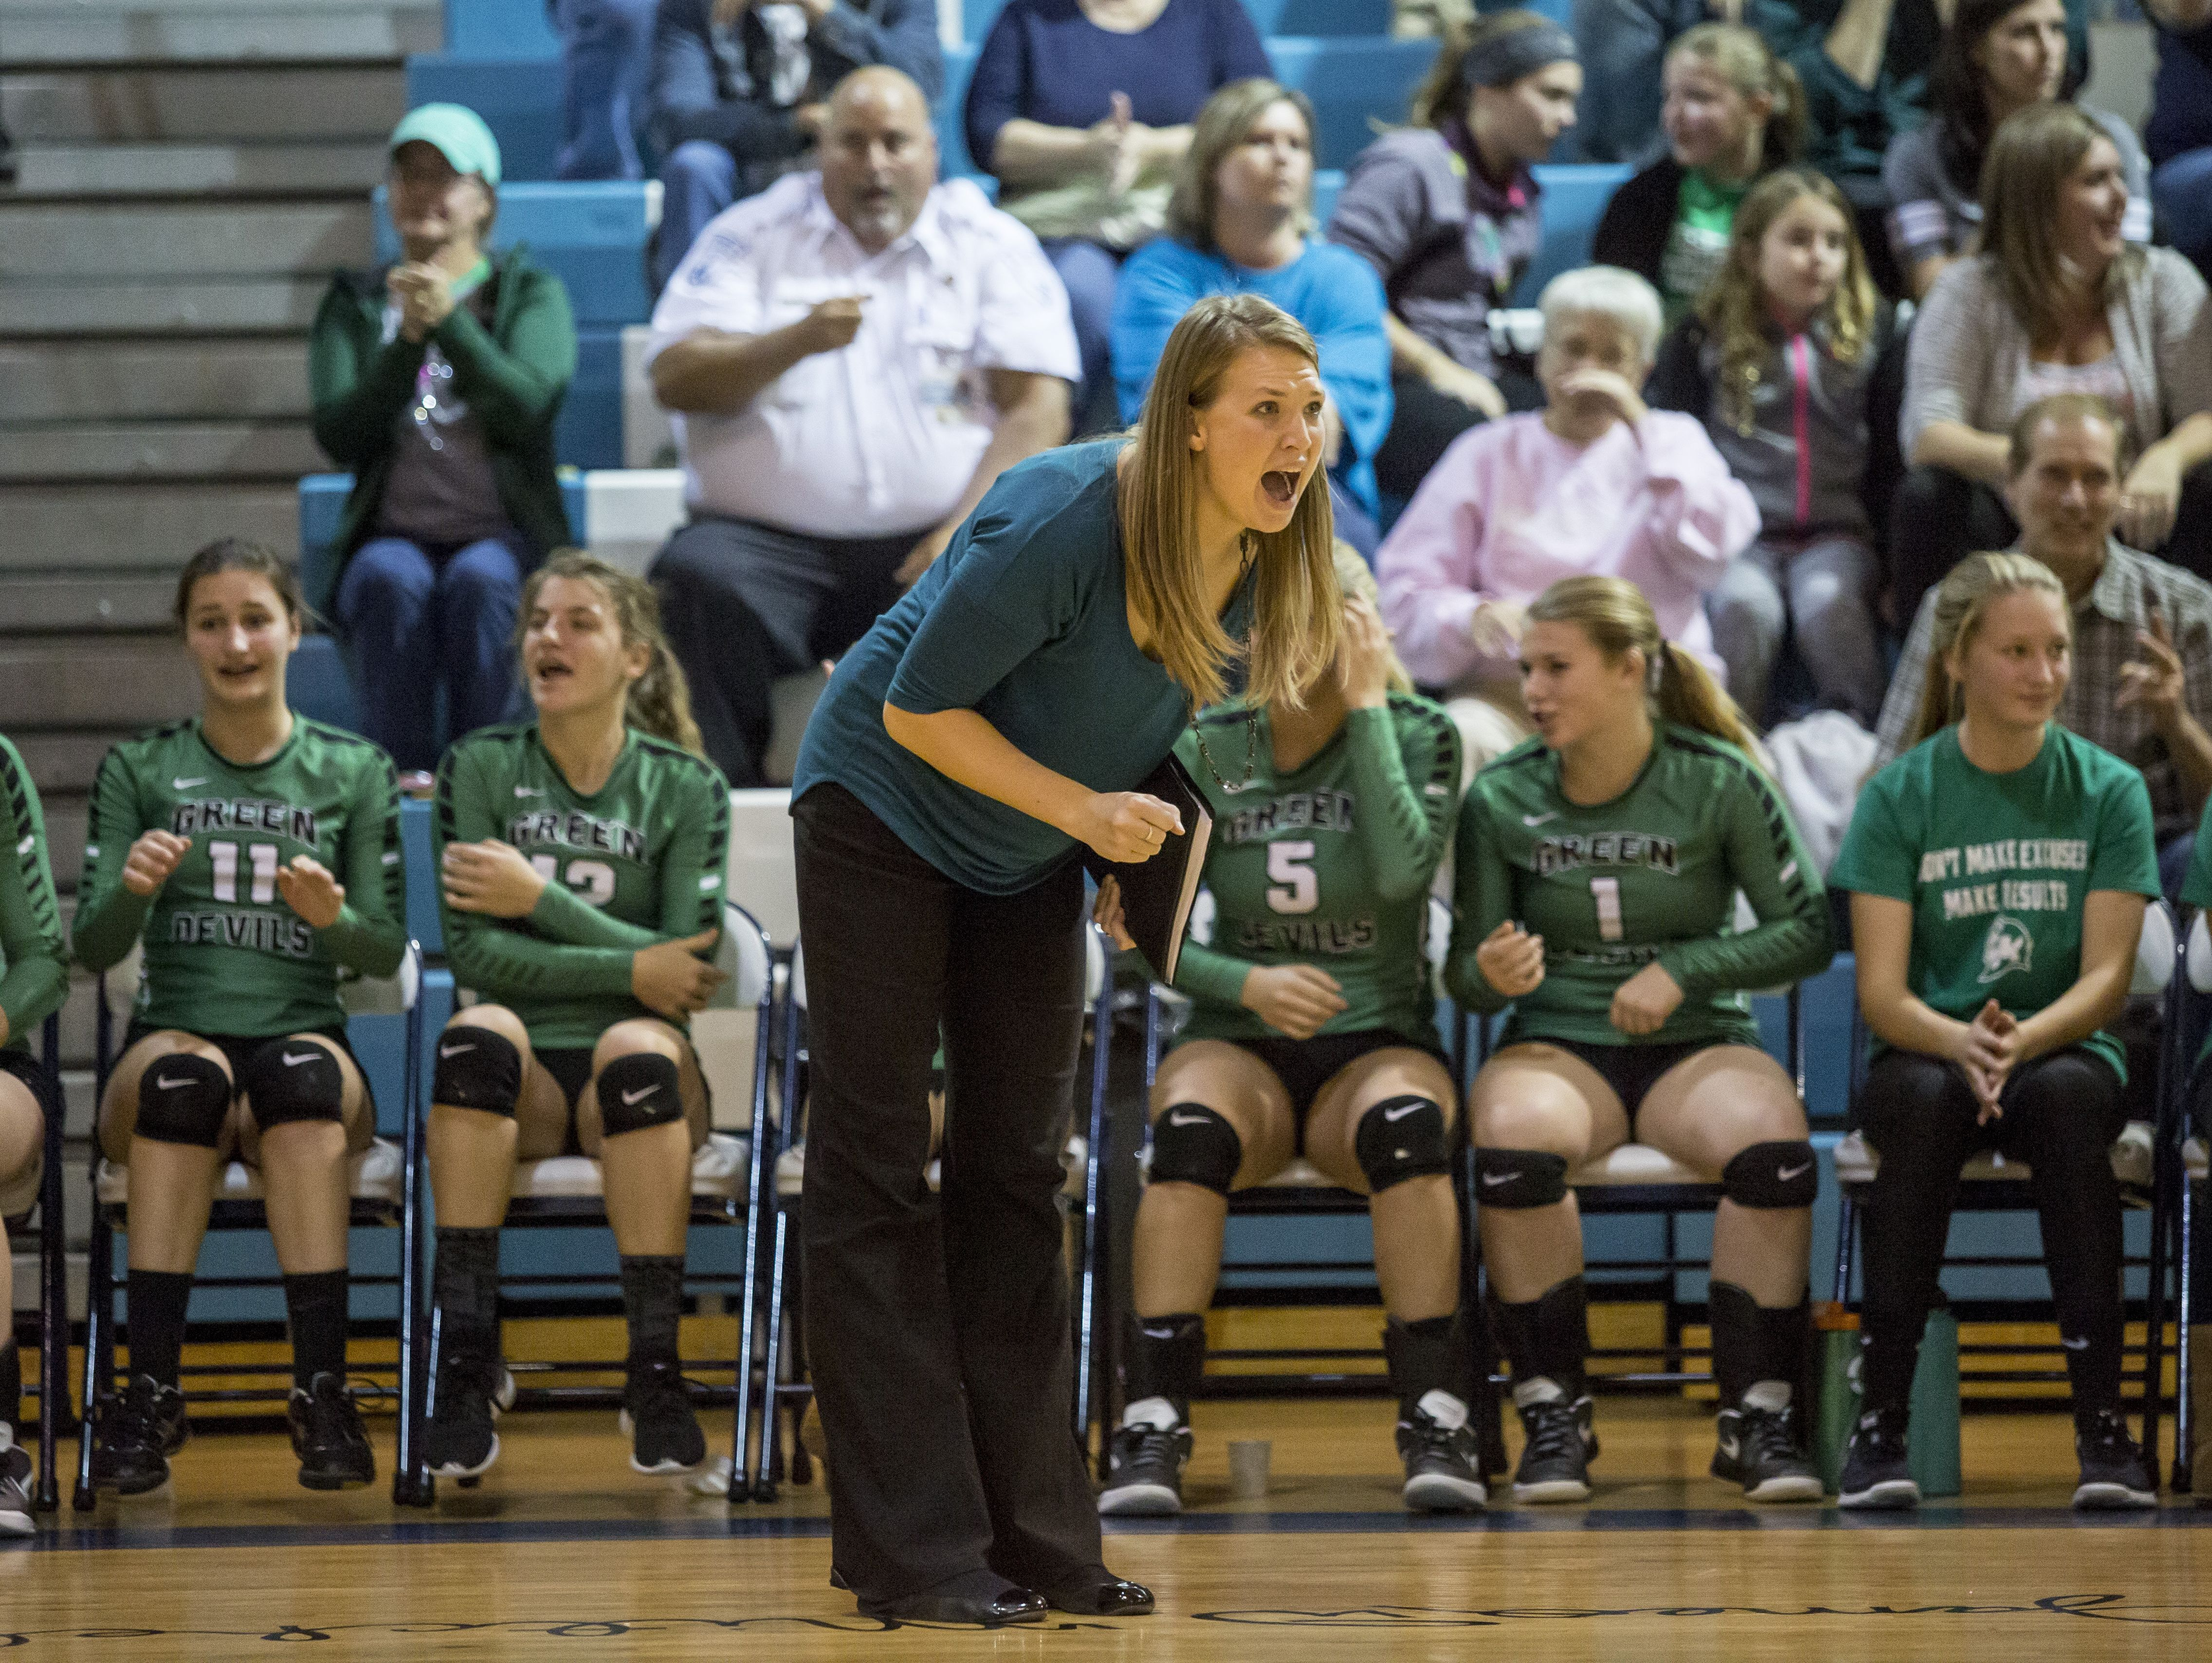 Brown City coach Jenna Welke yells from the sideline during a Class C regional volleyball game Thursday, Nov. 10, 2016 at Flint Hamady High School.